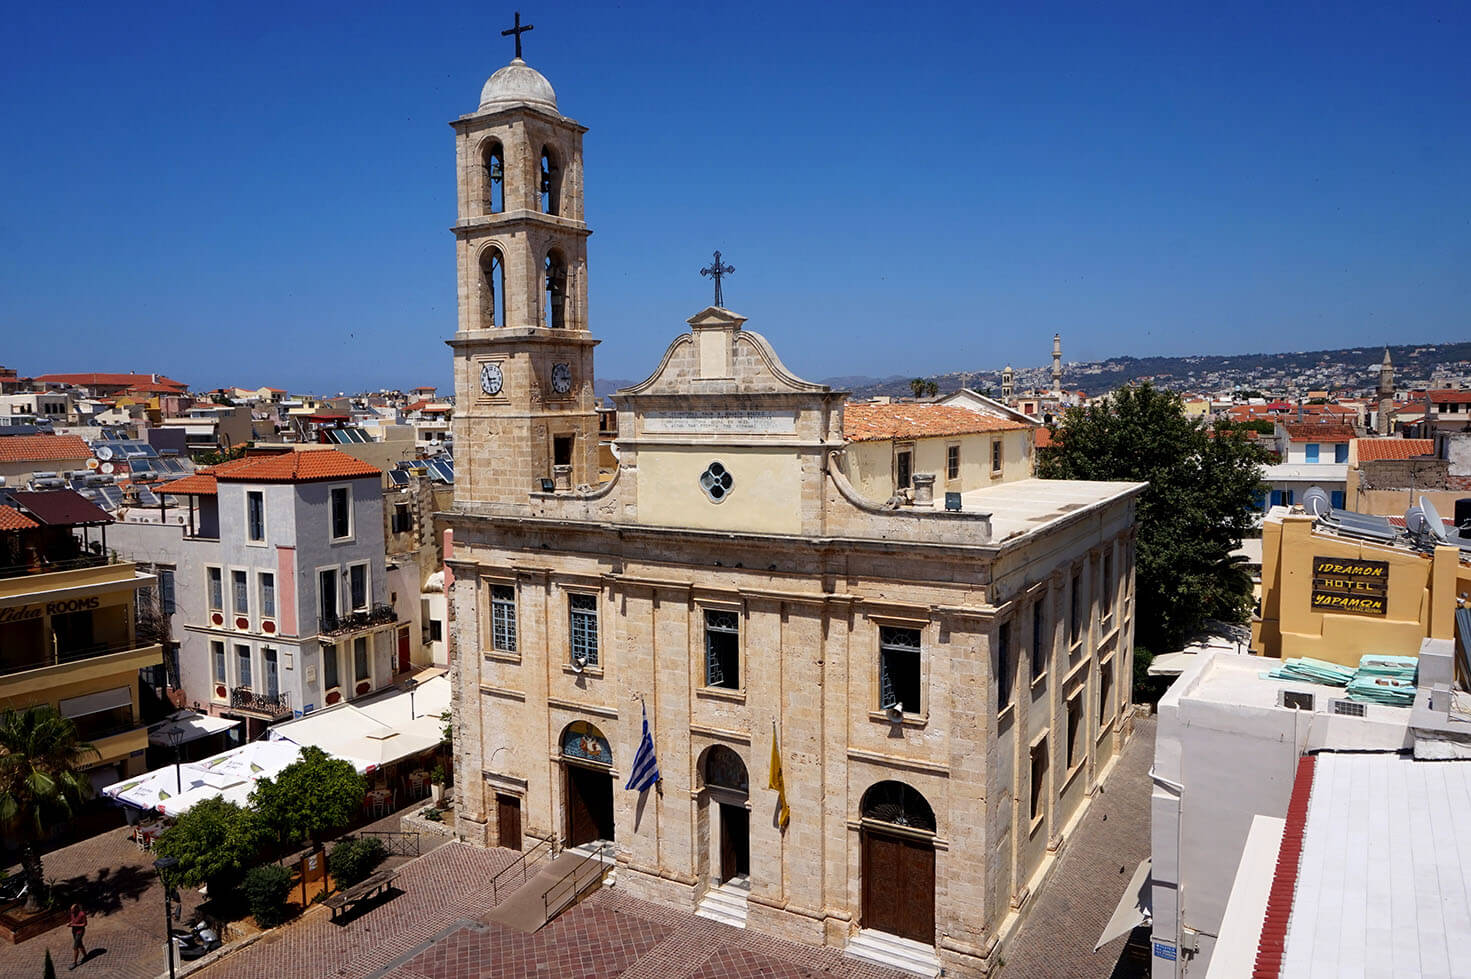 Chania Sights - The Cathedral